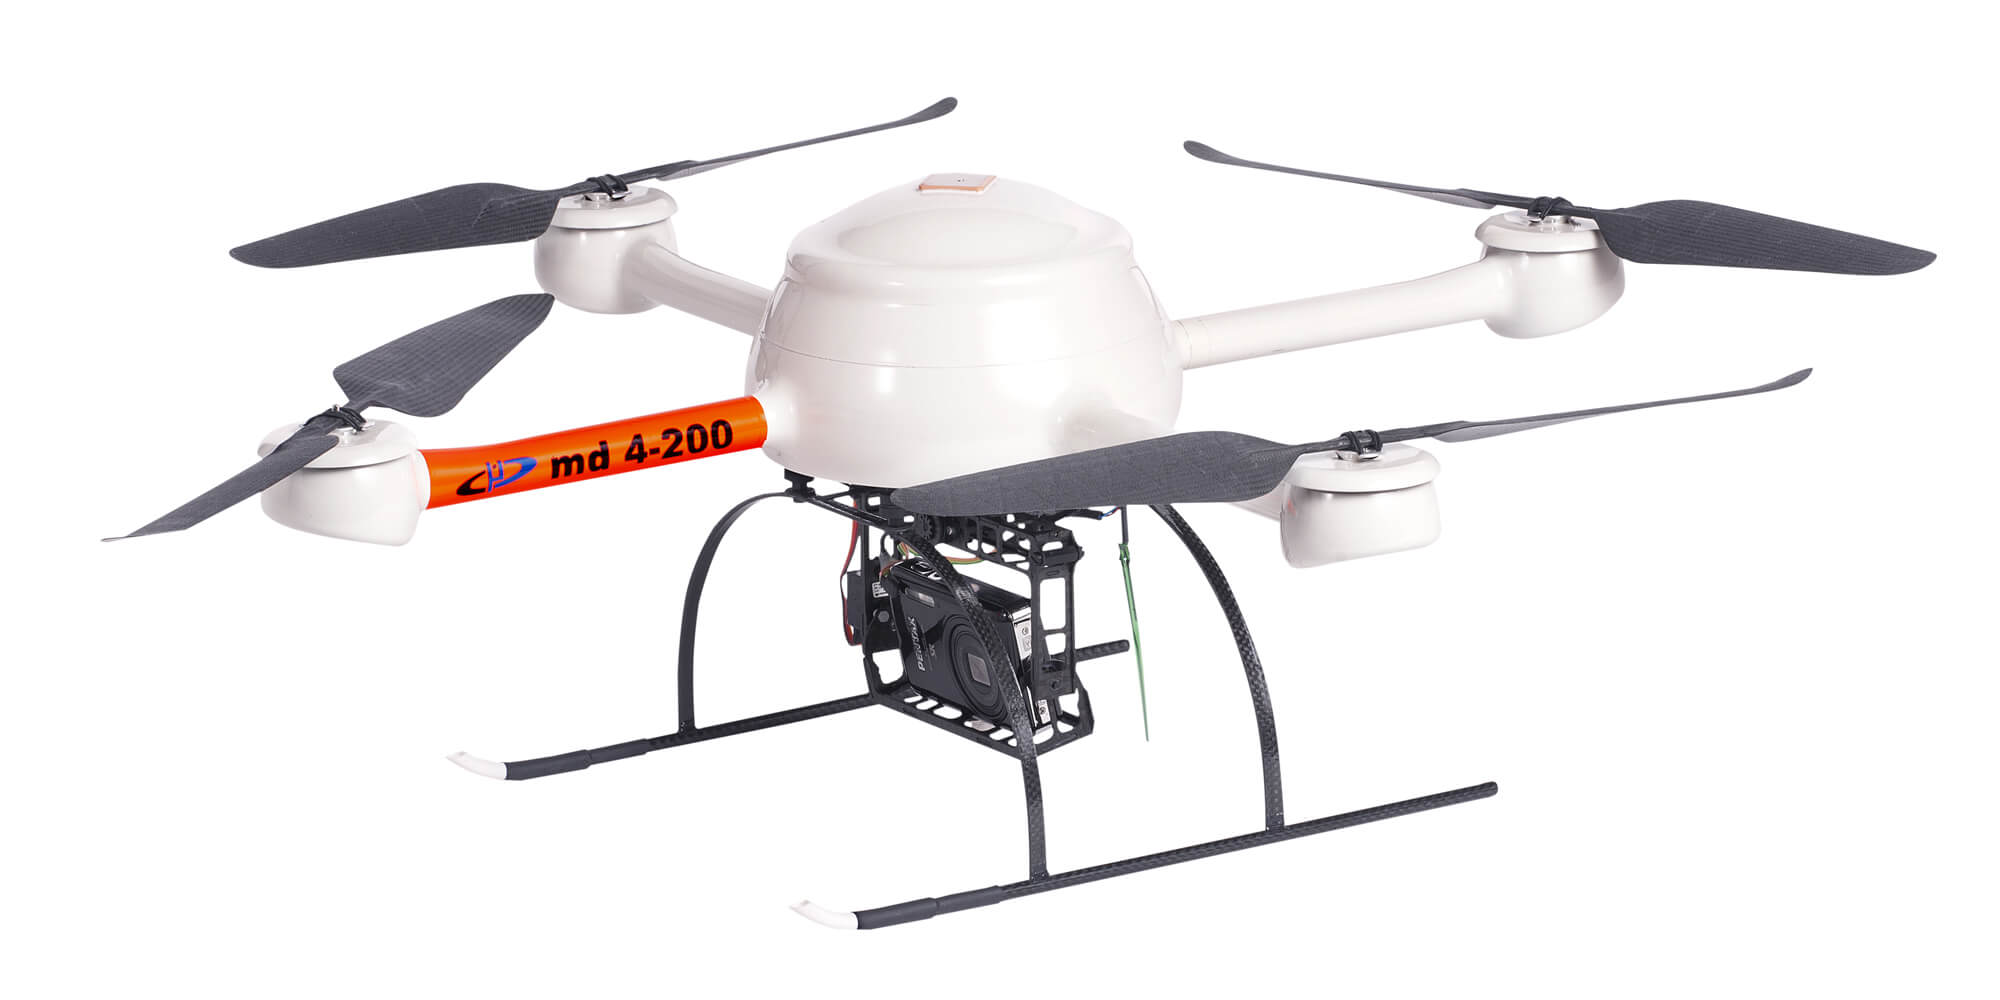 Microdrones md4-200